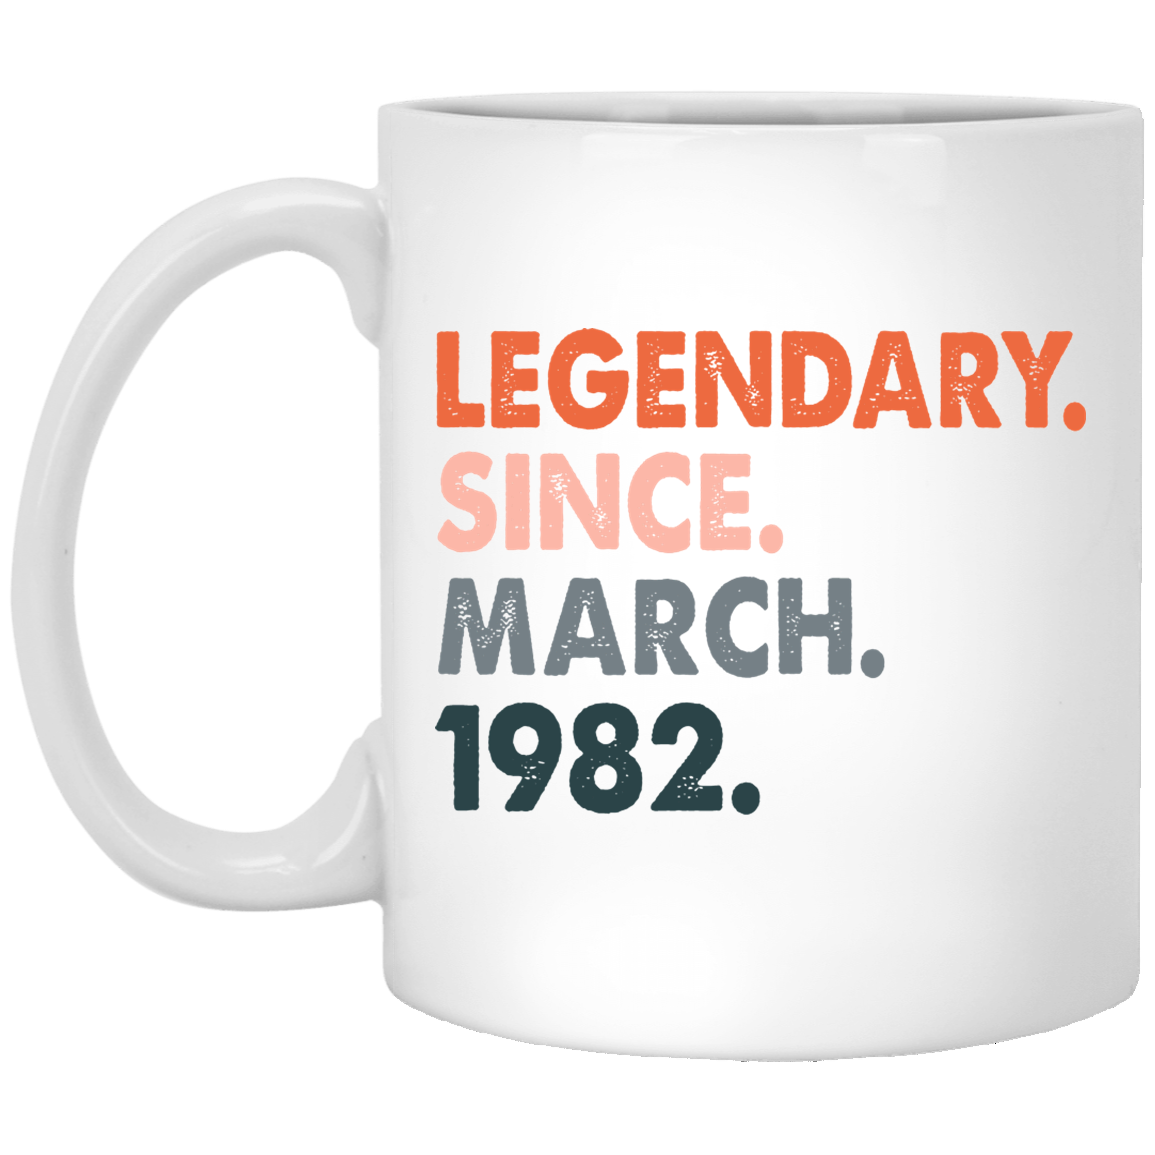 39th-Birthday-Ideas-for-Women-and-Men-Legendary-Since-March-1982 Funny Quotes Coffee Mug 99promocode